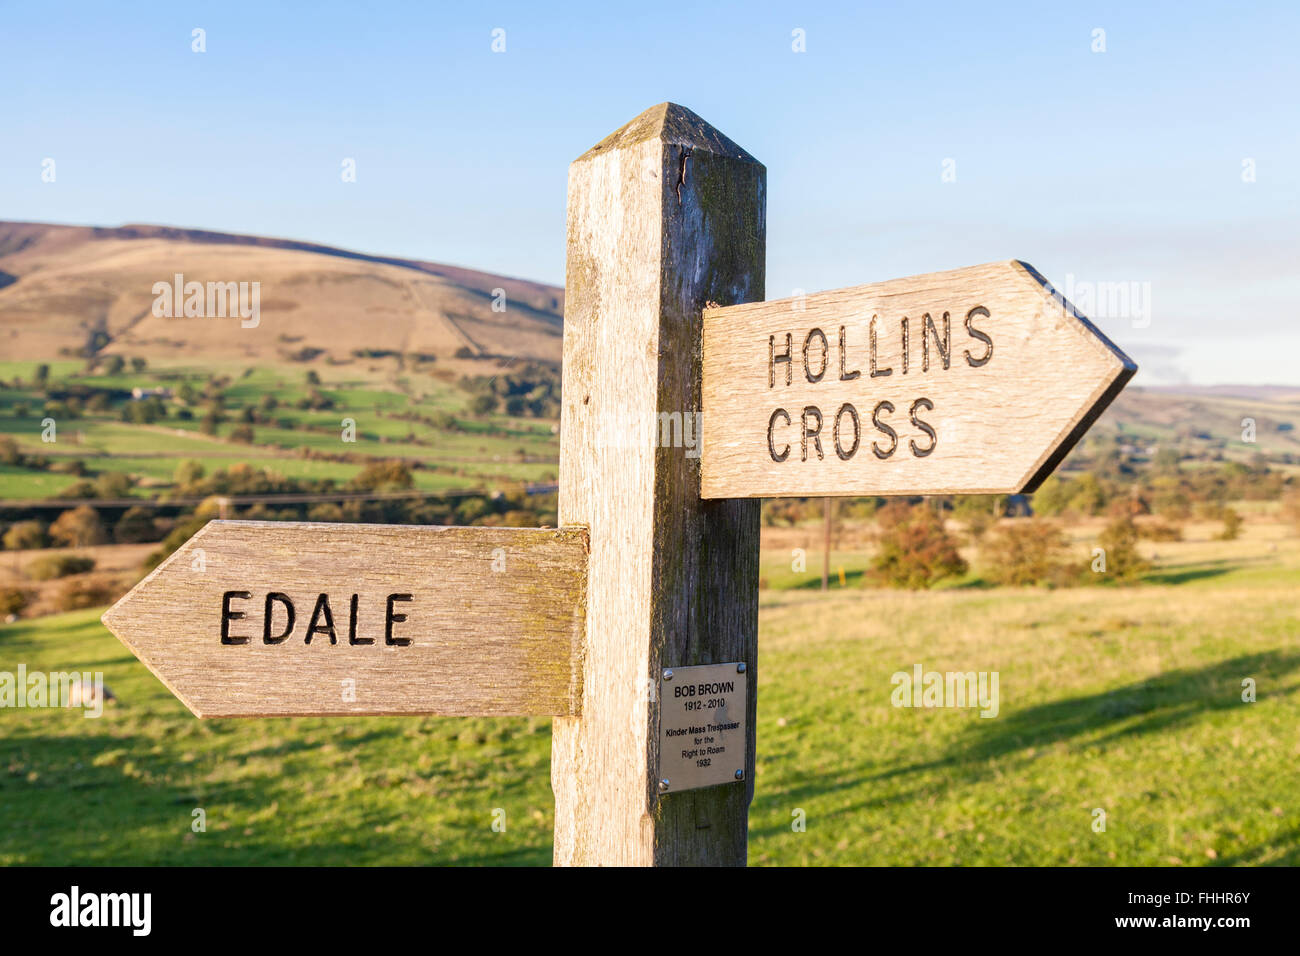 Footpath sign for Edale and Hollins Cross with memorial plaque to Bob Brown, Kinder Scout mass trespasser, Derbyshire, - Stock Image